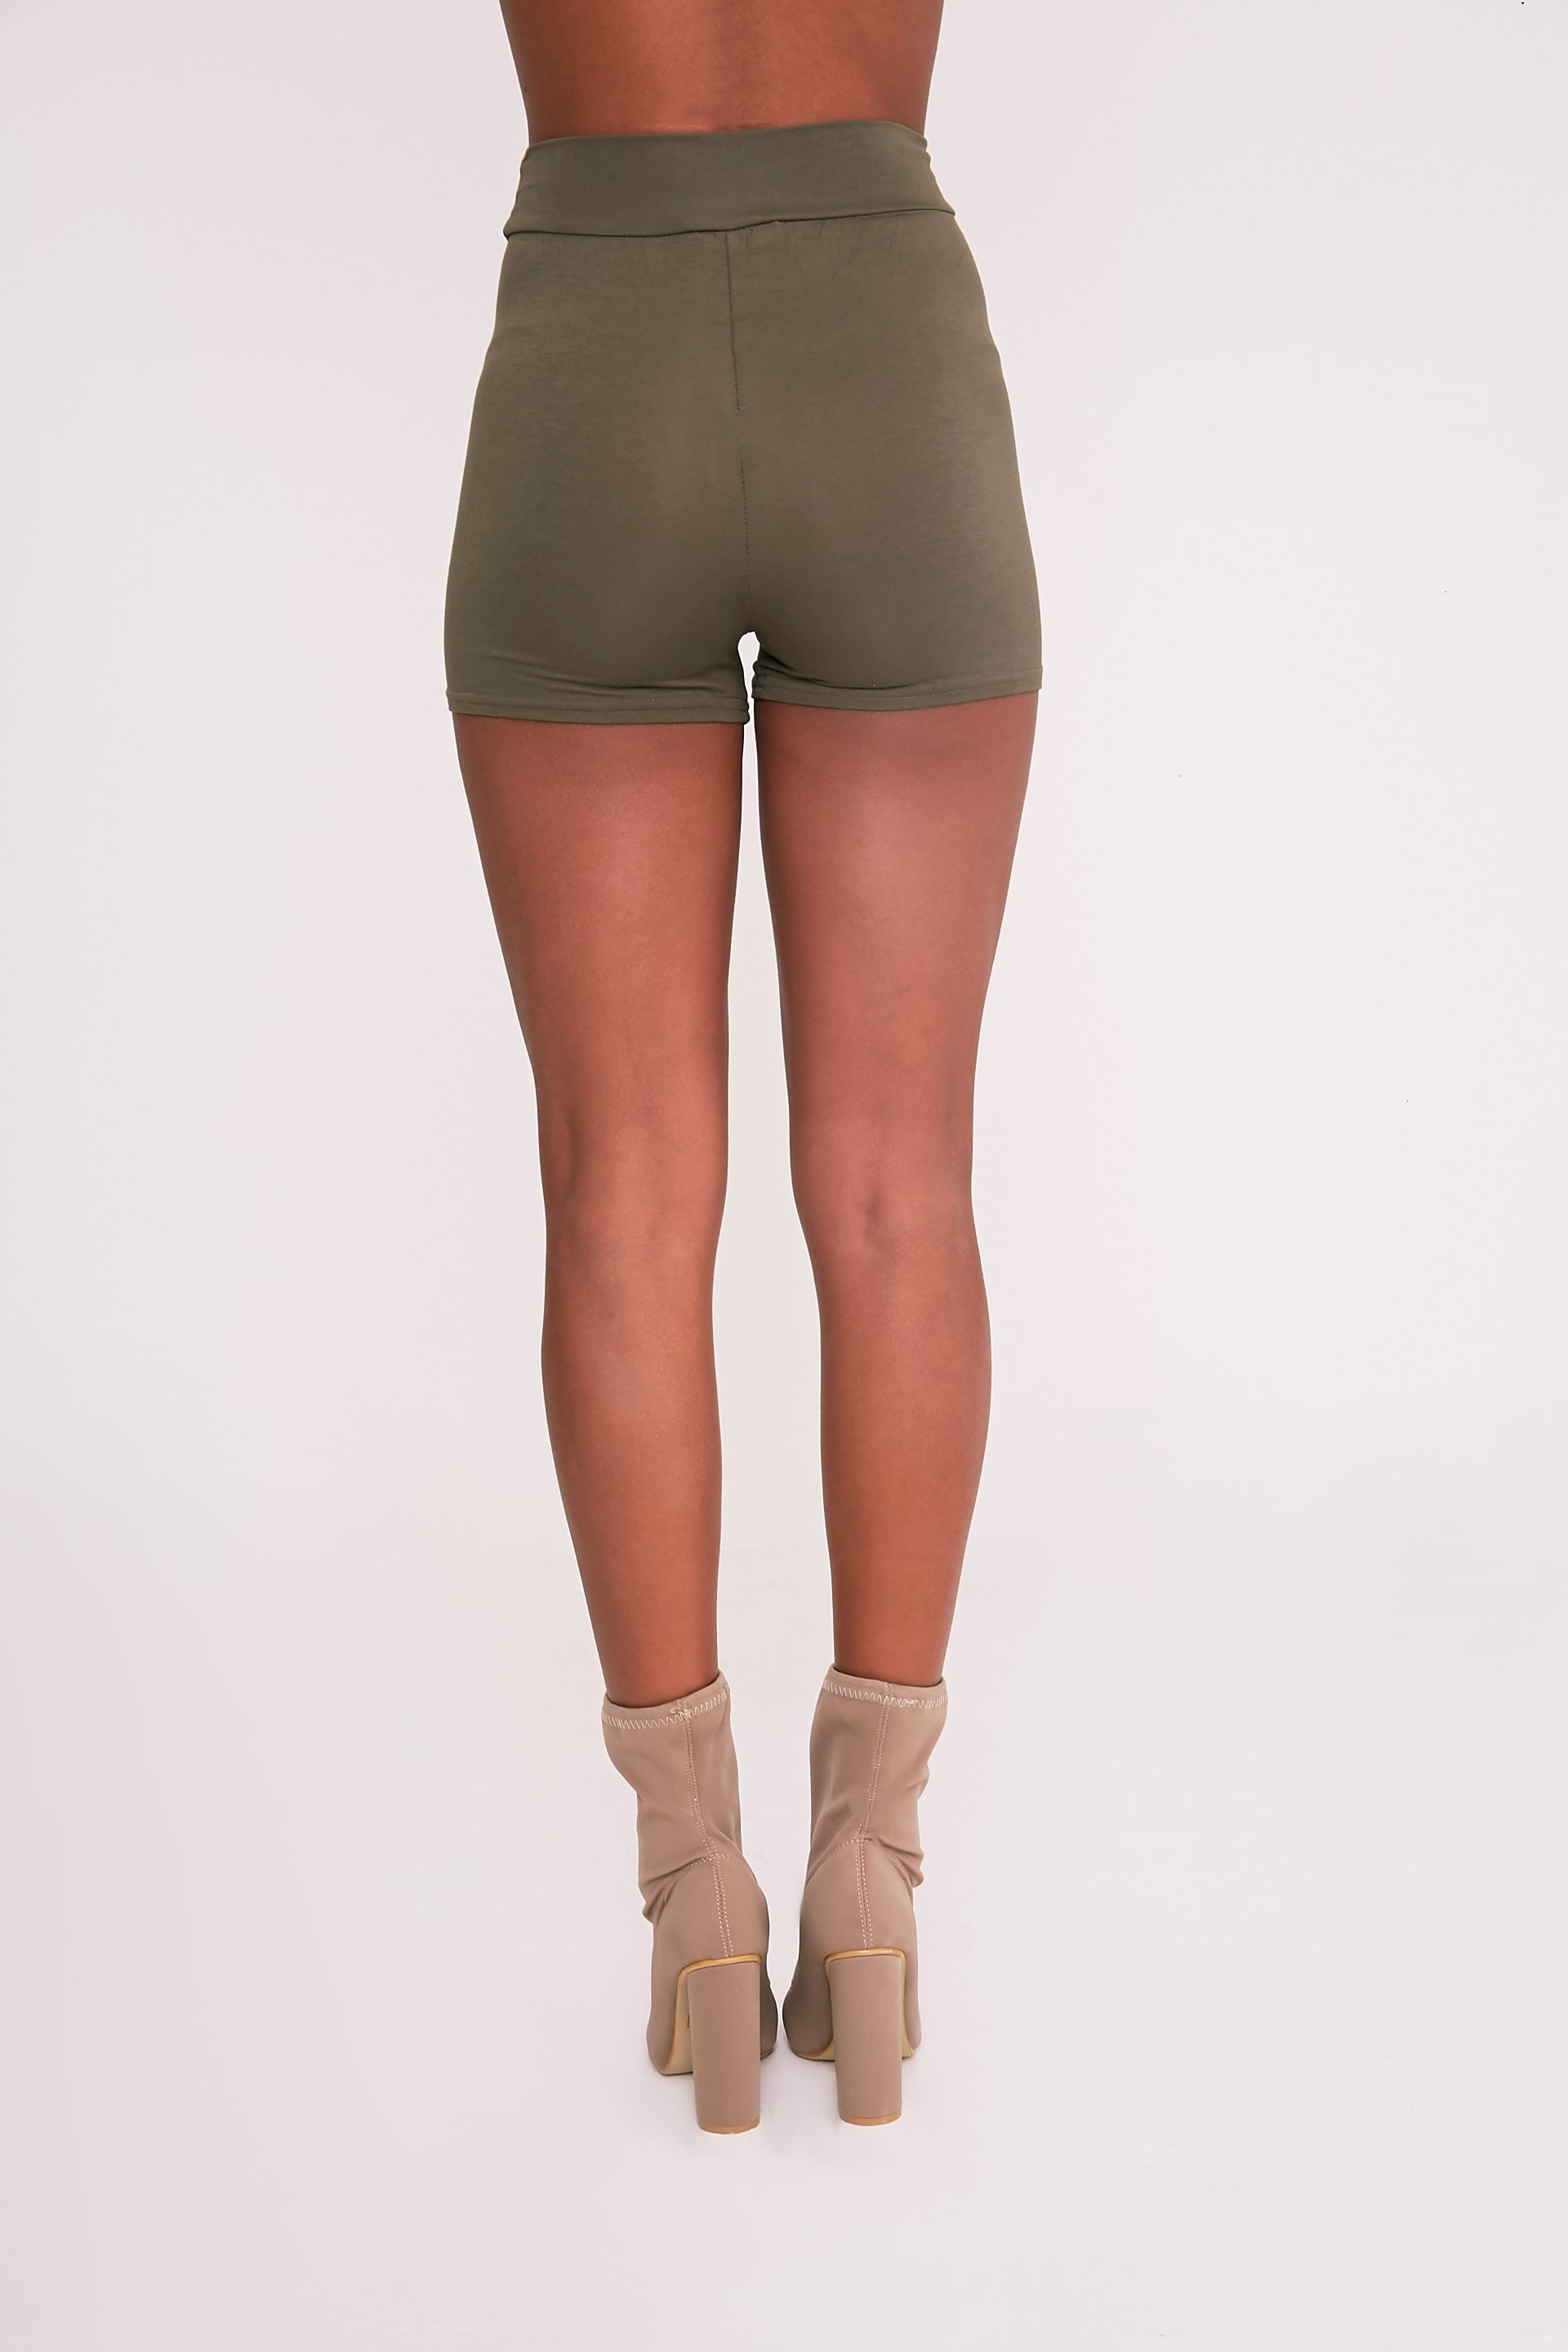 Basic Khaki High Waisted Shorts 5